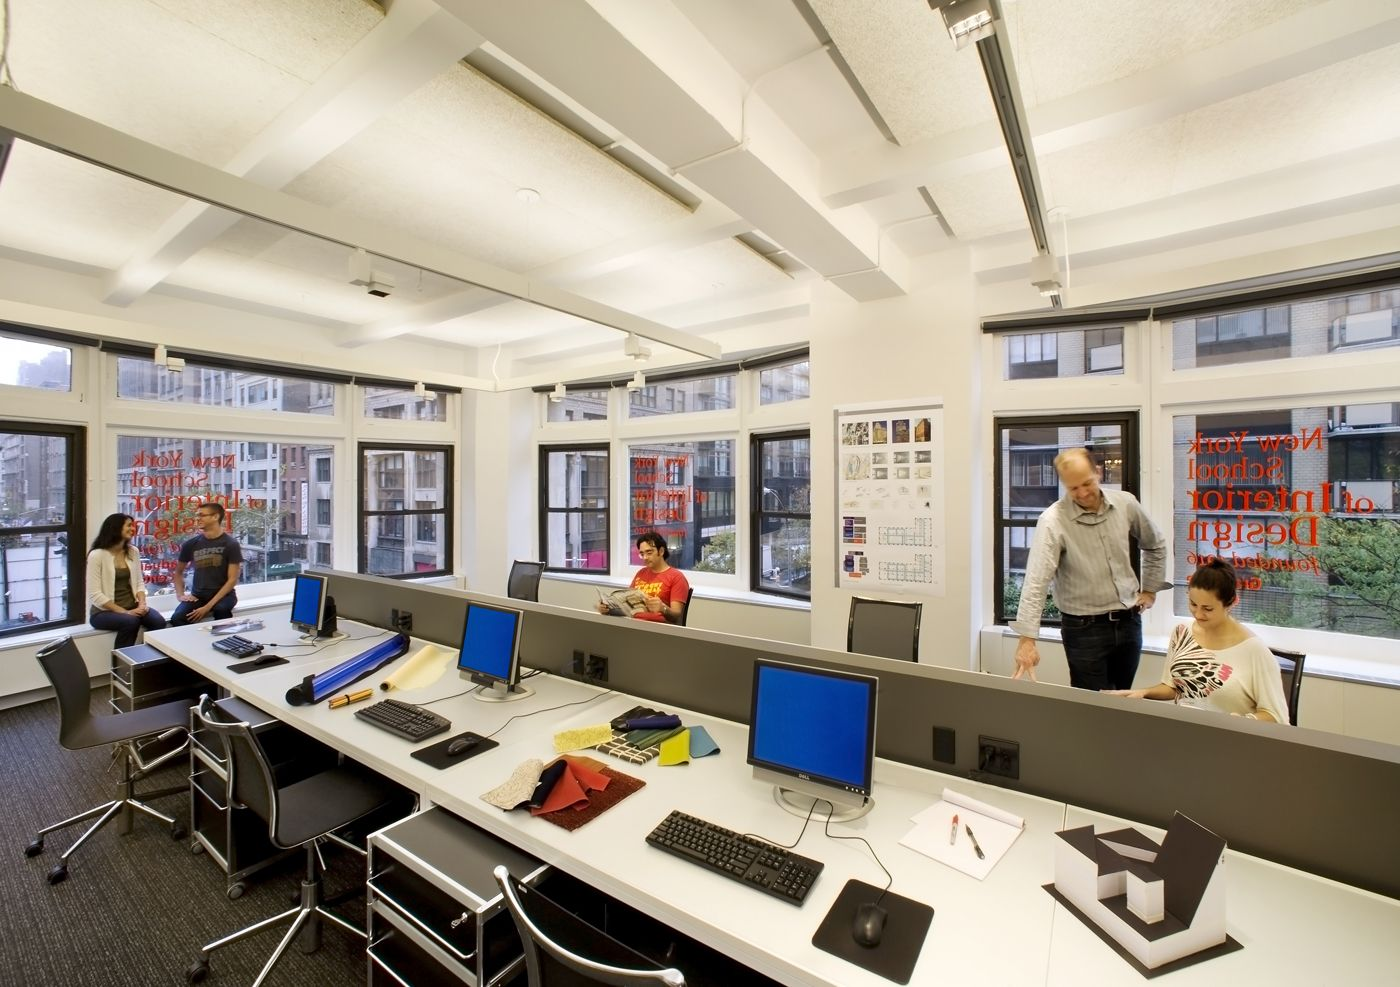 New York School Of Interior Design NYSID Recently Completed Its Graduate Center At 401 Park Avenue Street NYC